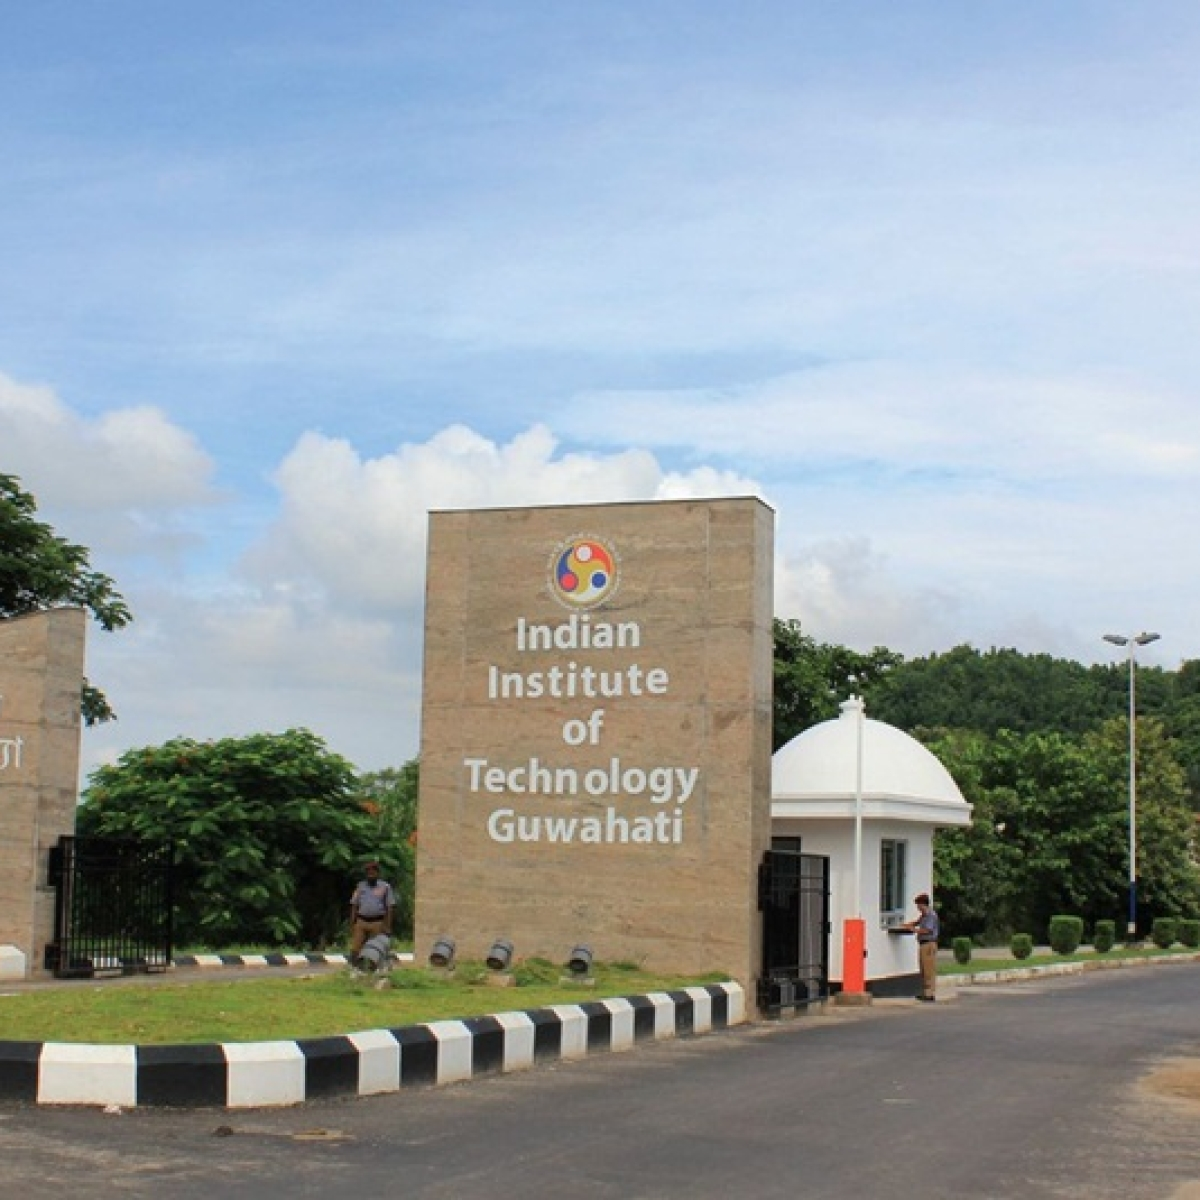 IIT-Guwahati professor asked to go on compulsory retirement after he spoke about corruption in institution